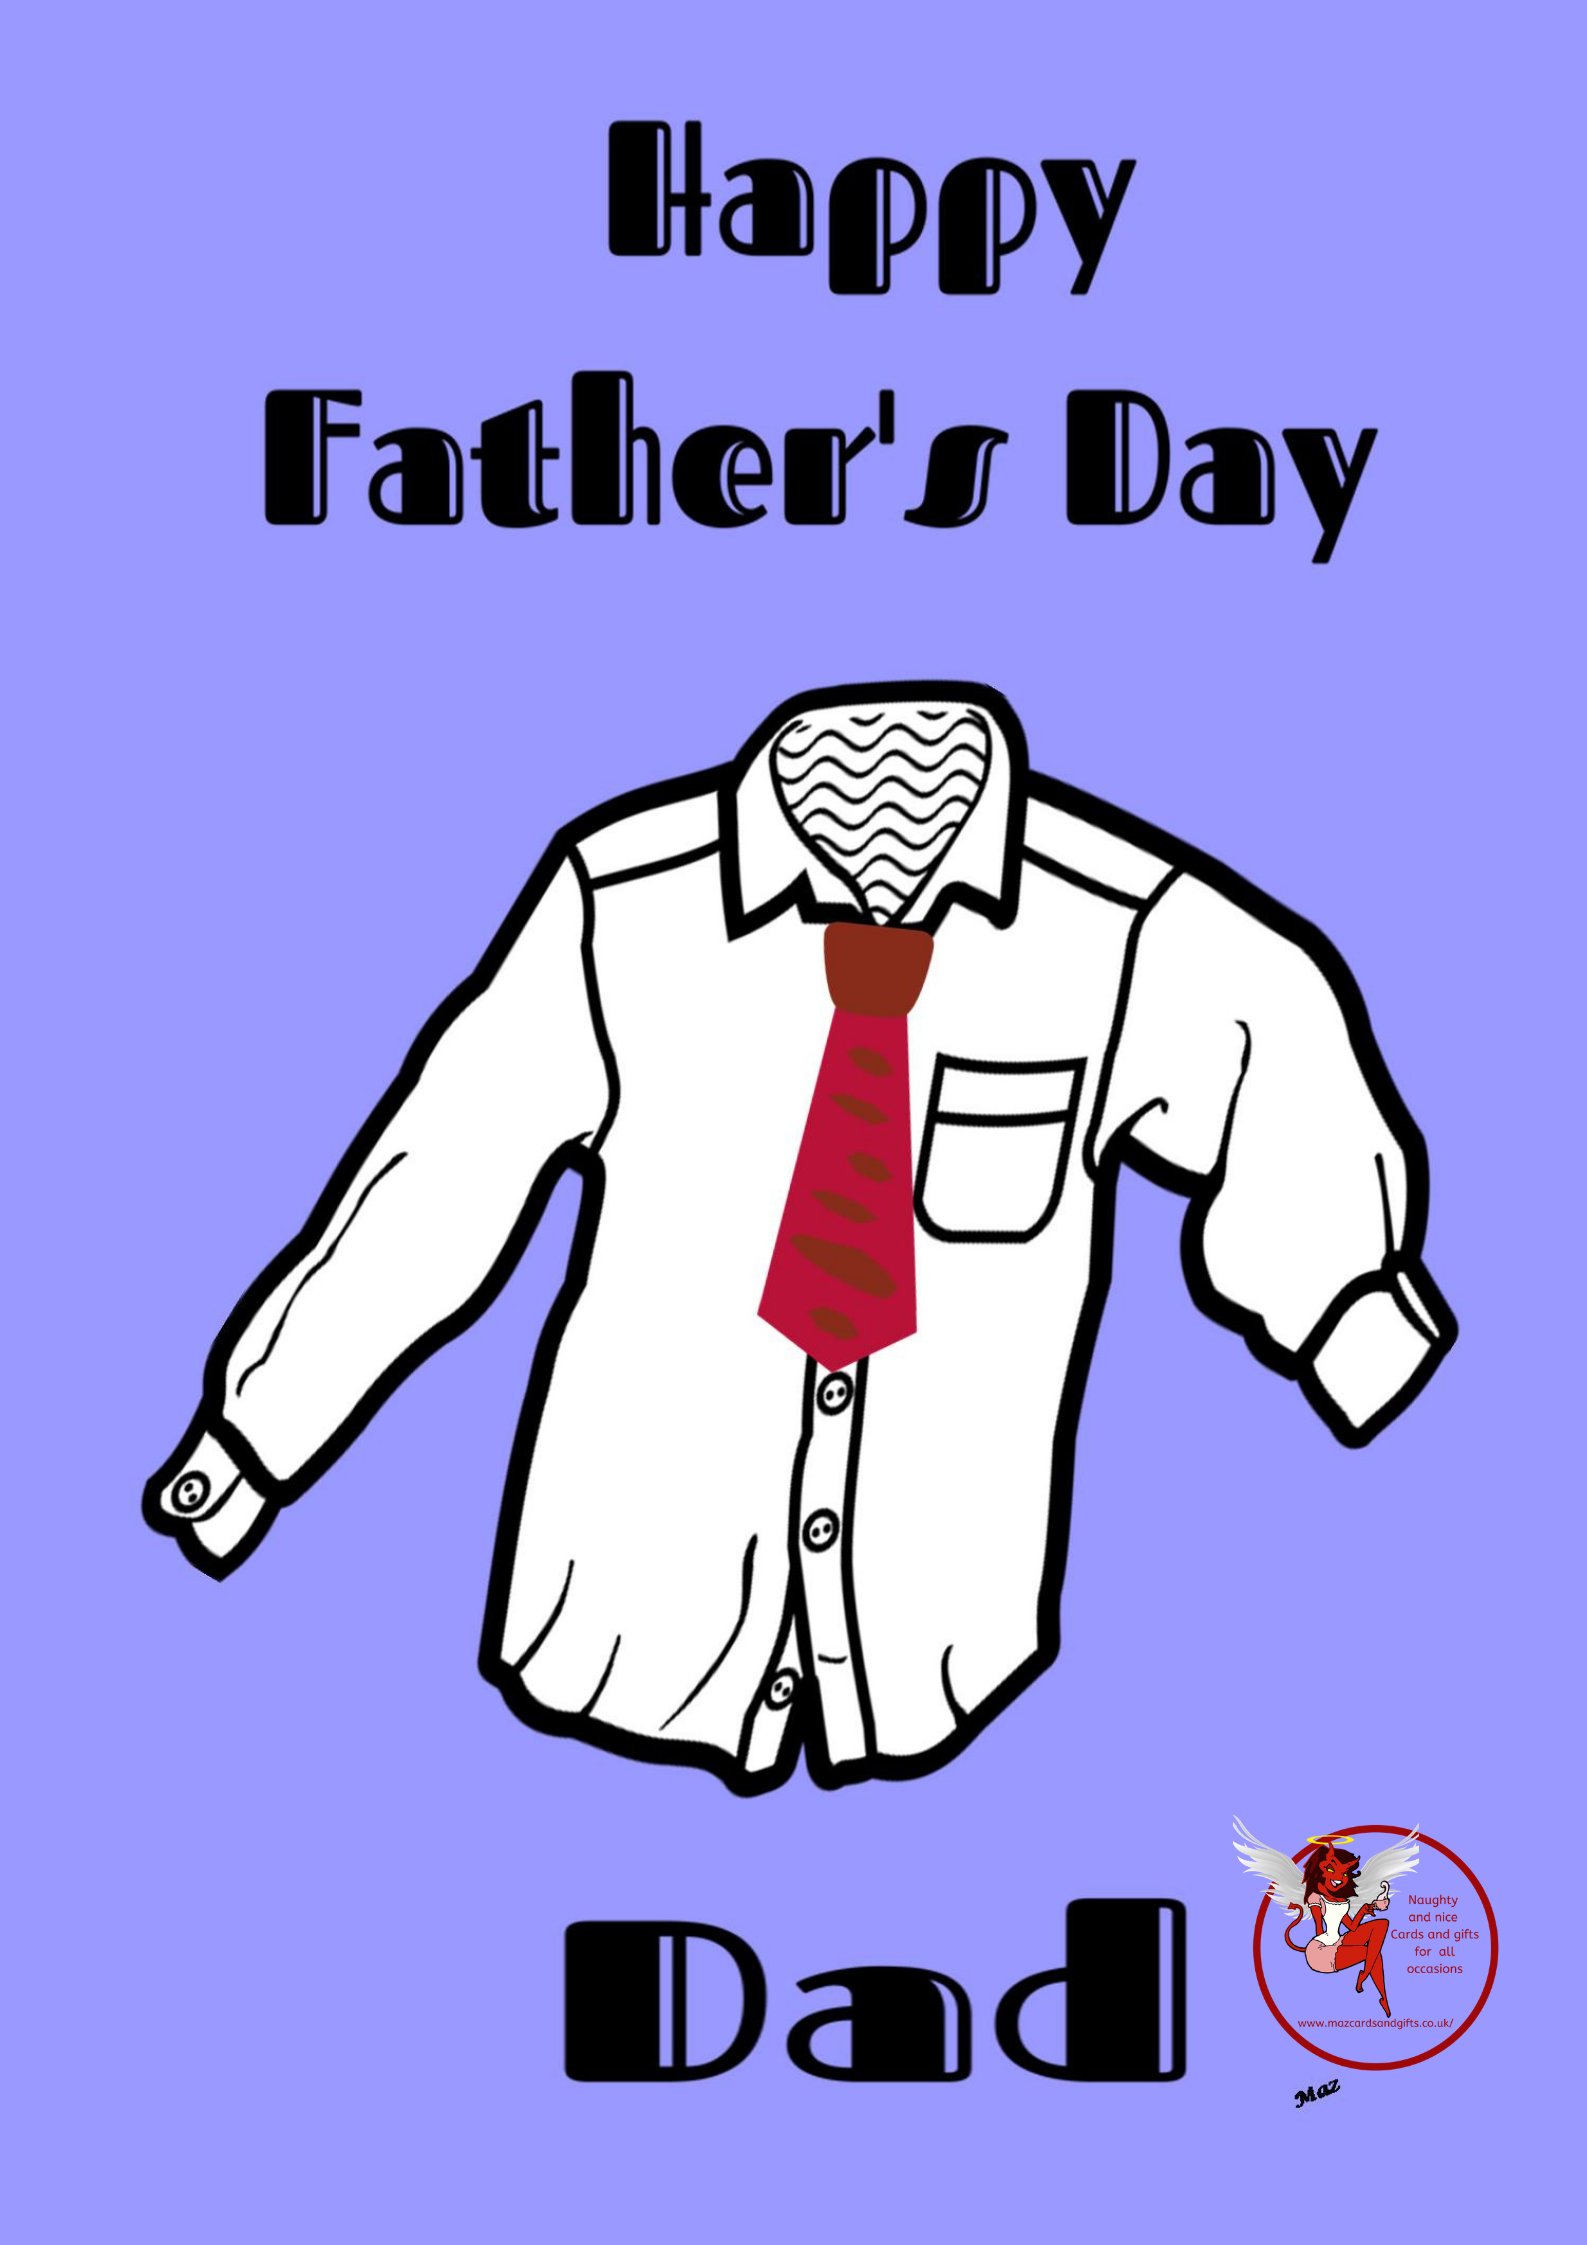 Father's day -  Shirt and Tie Card - Order No 012